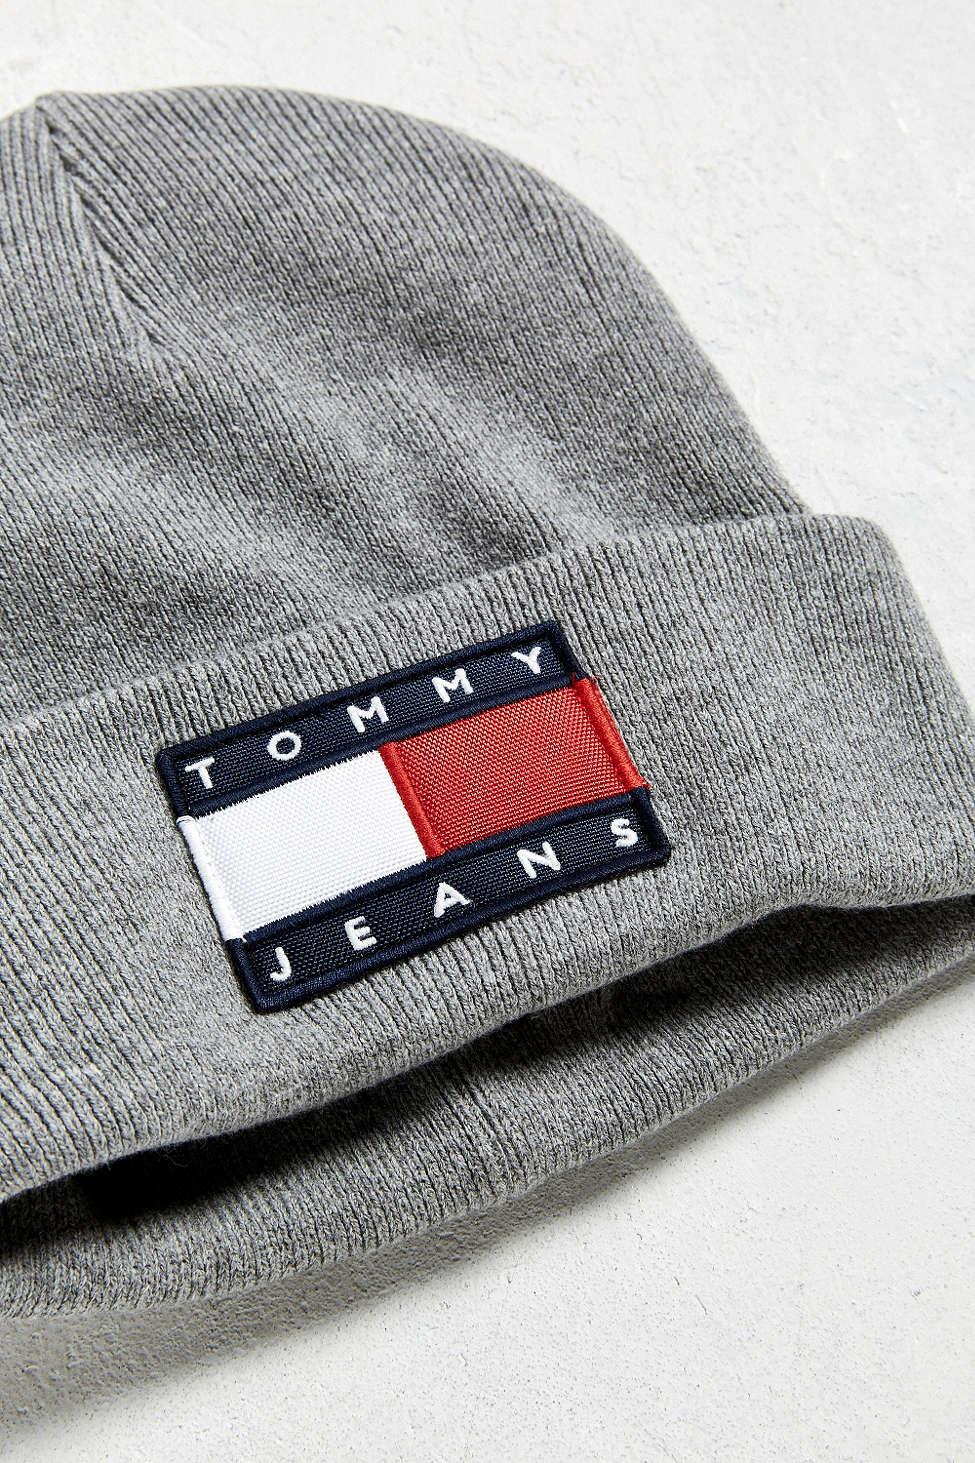 Lyst - Tommy Hilfiger Tommy Jeans For Uo  90s Beanie in Gray for Men 798d88a5e75